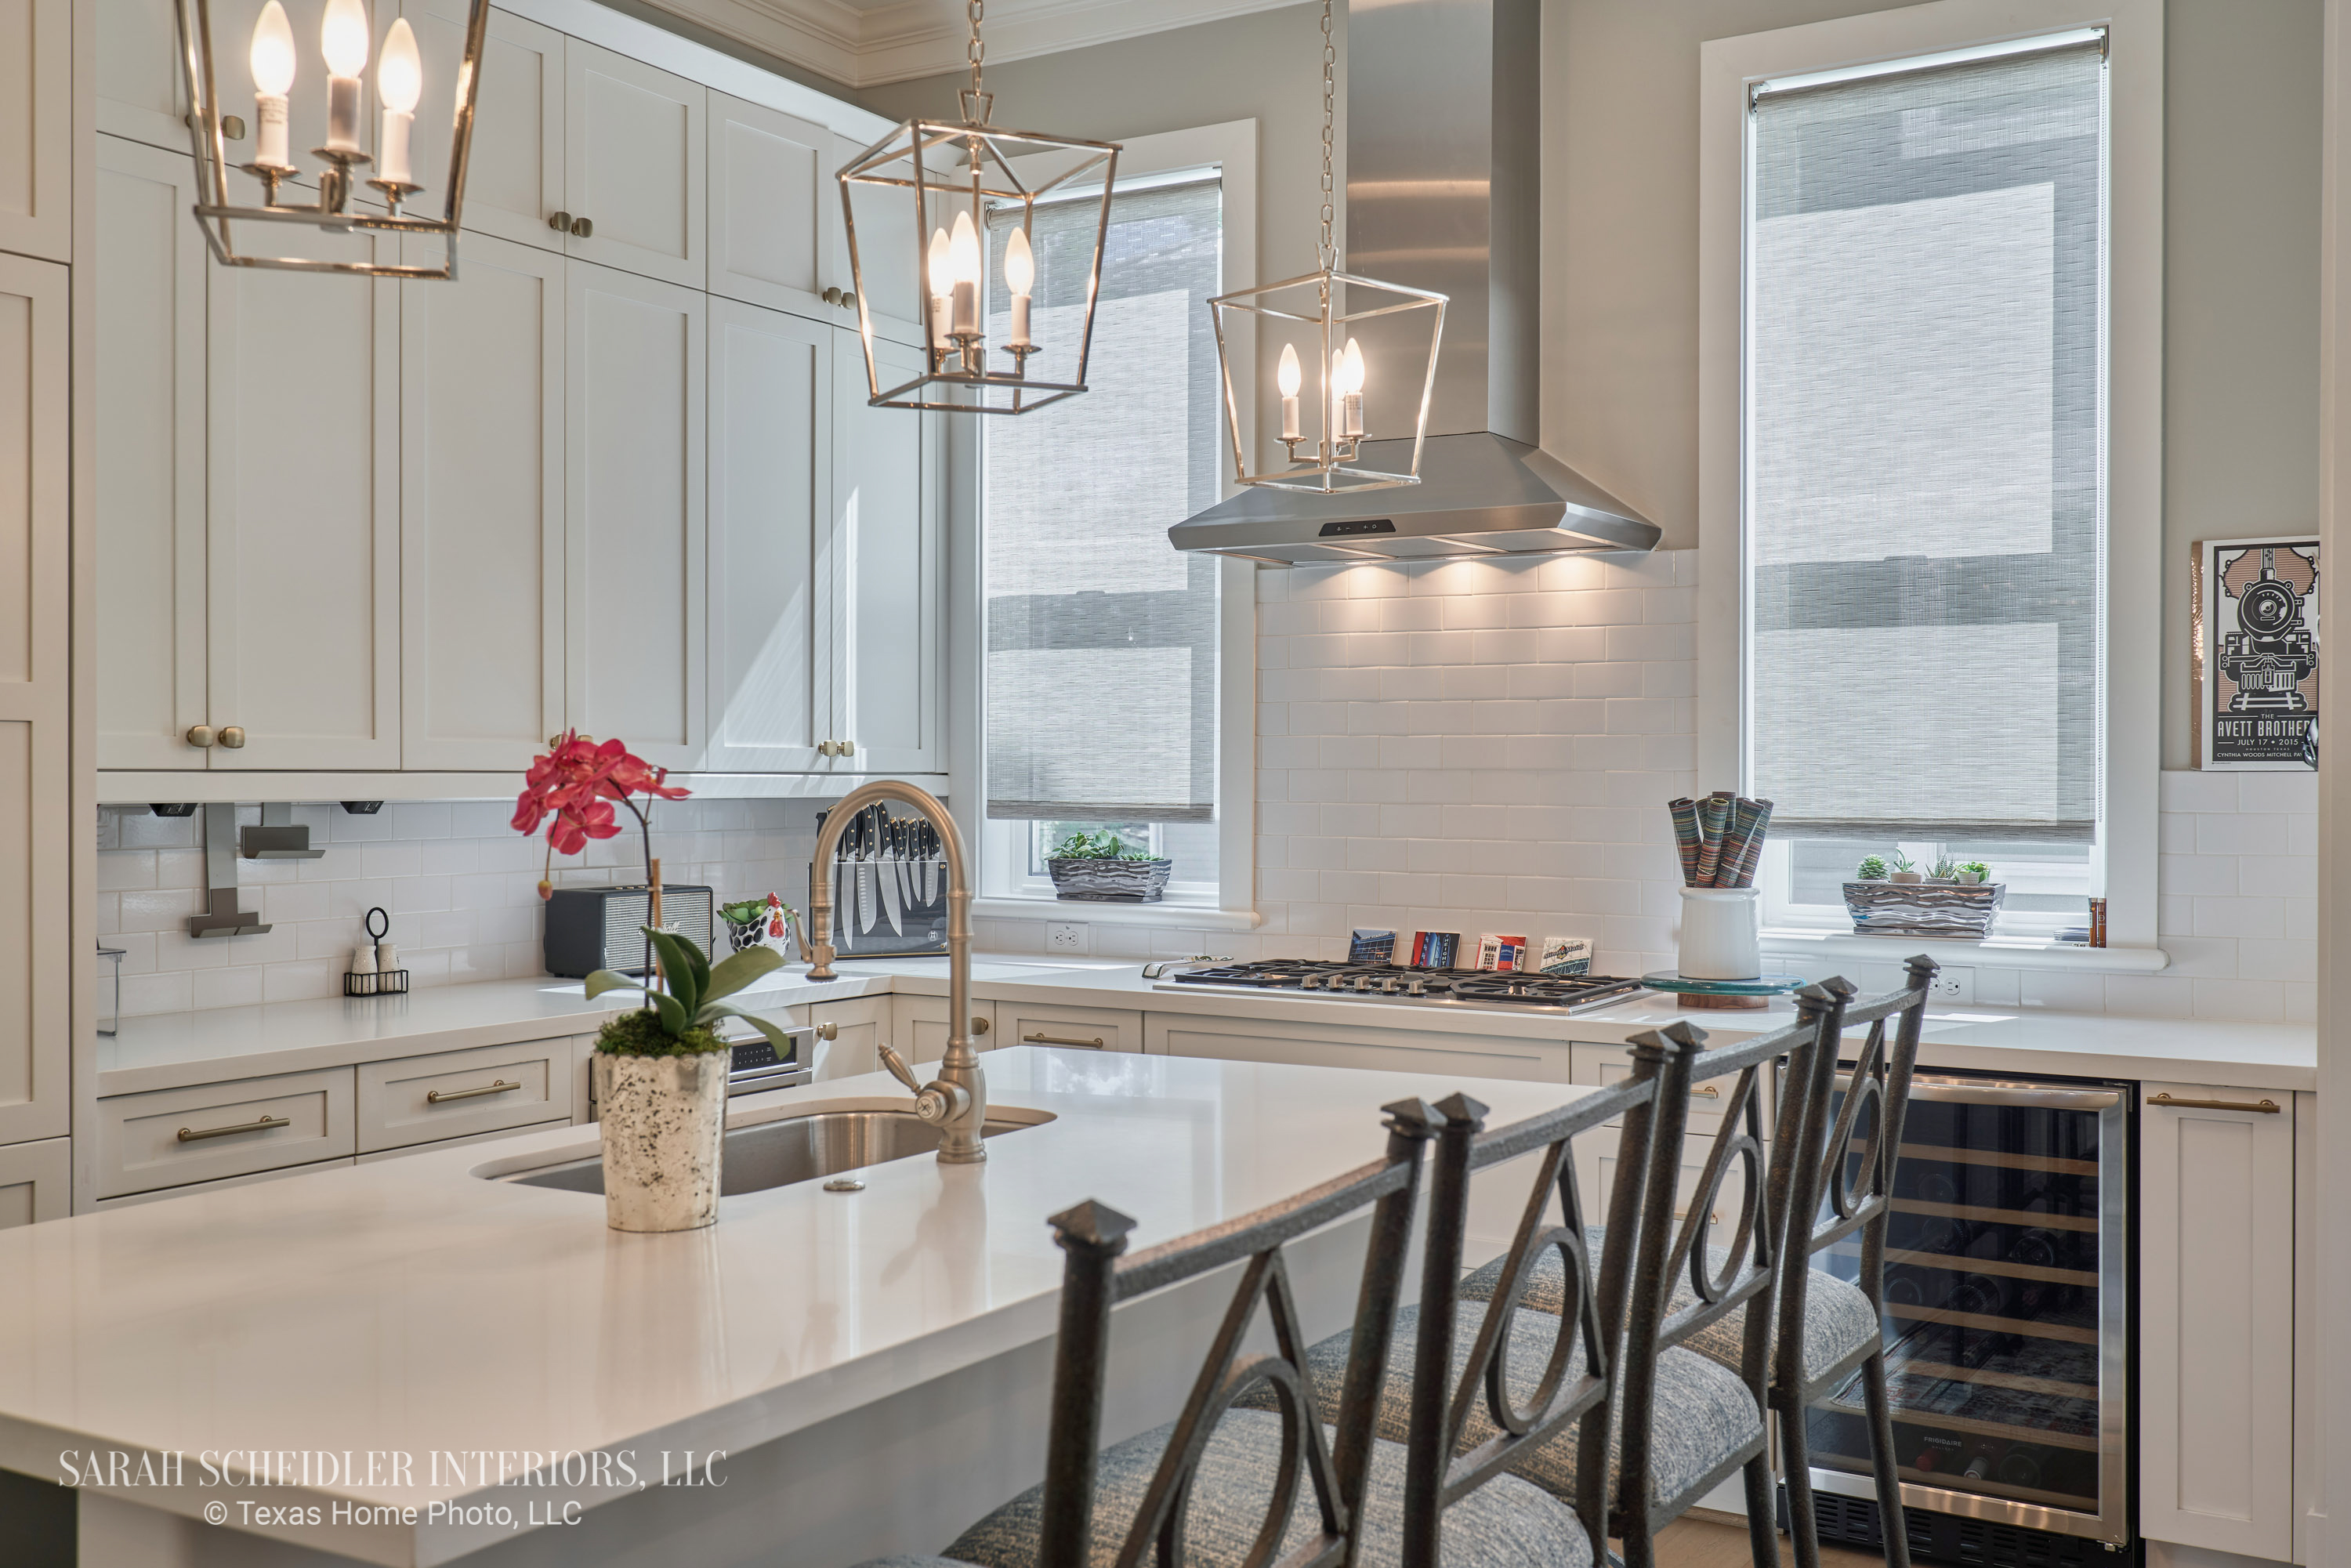 Stunning White Kitchen with Lantern Pendants, Reupholstered Bar Stools, Faux Fuchsia Orchid, and Sheer Custom Window Shades